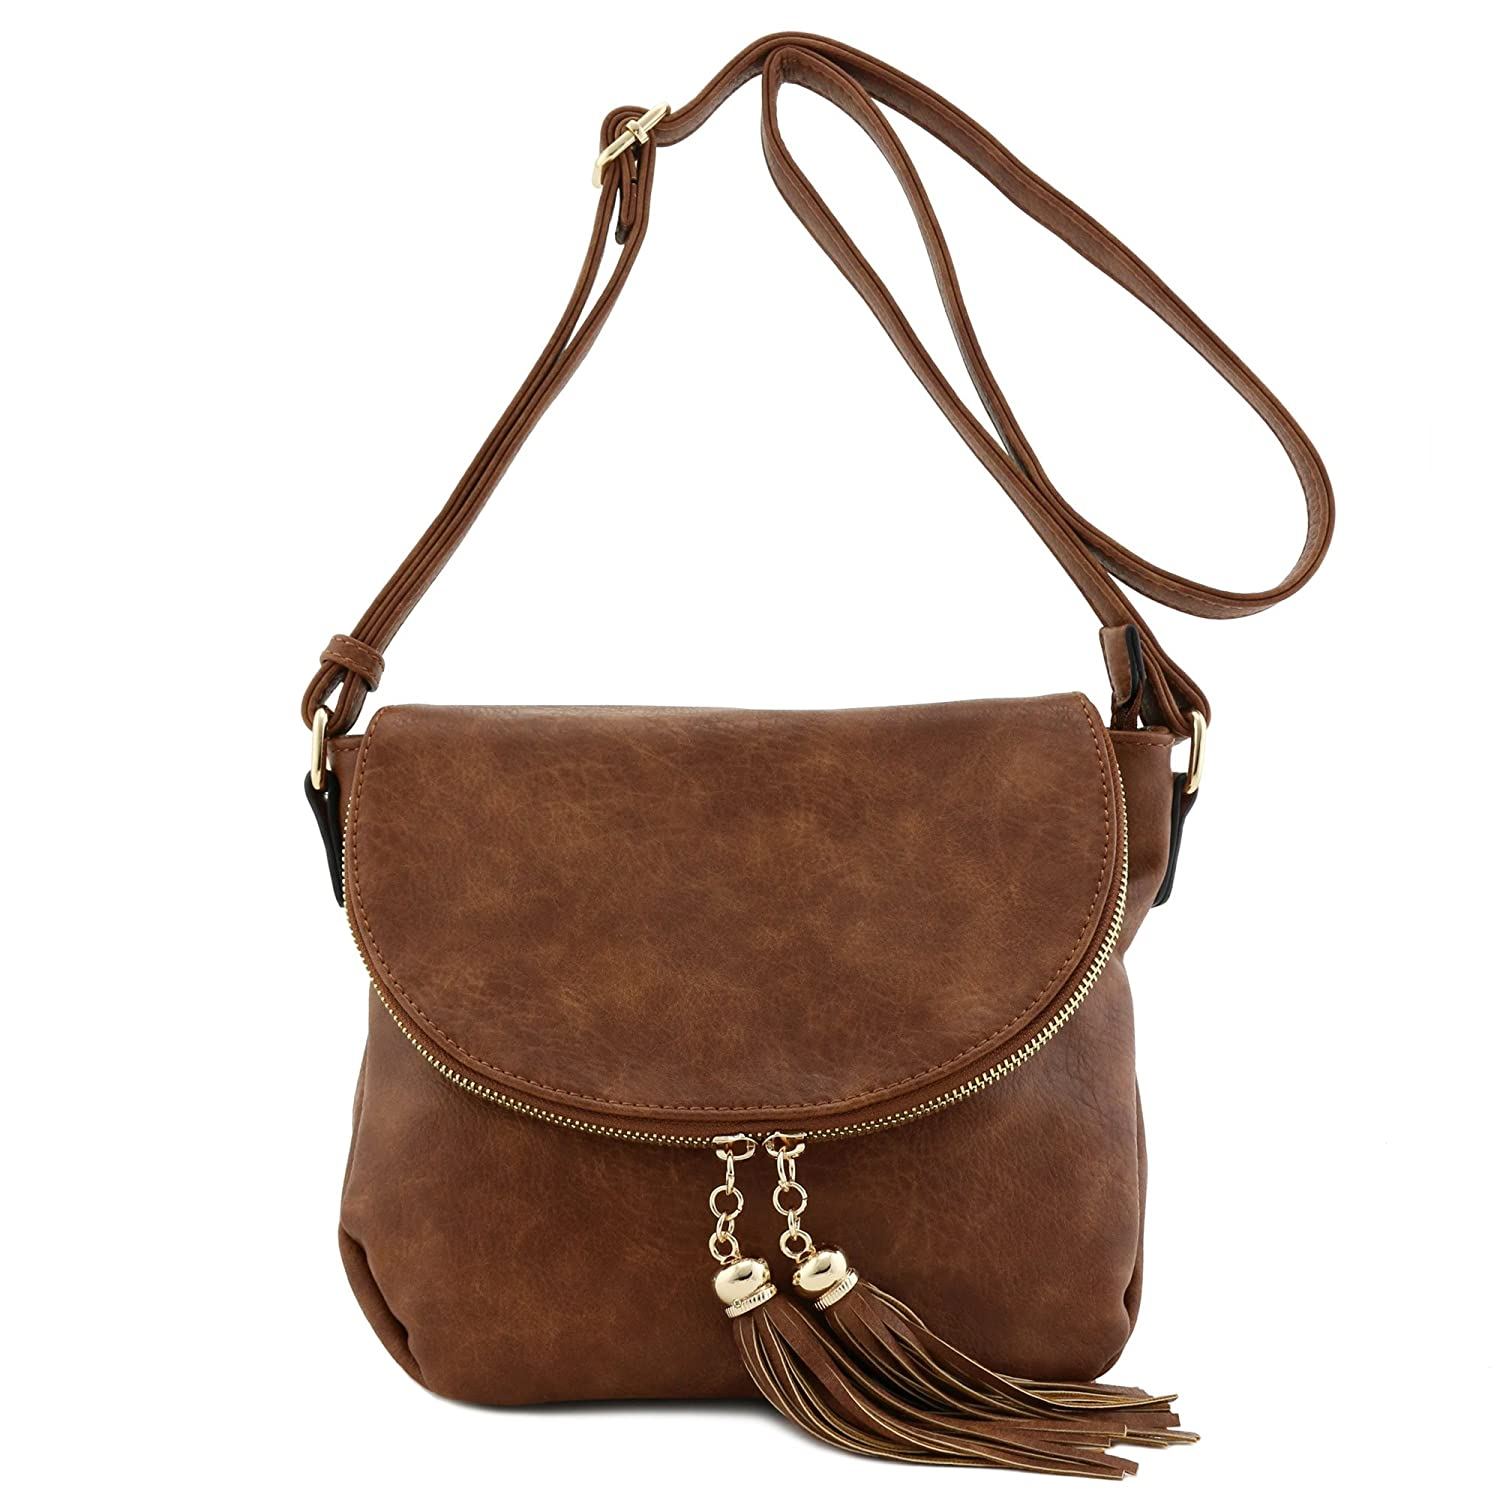 Tassel Accent Crossbody Bag with Flap Top 10478390